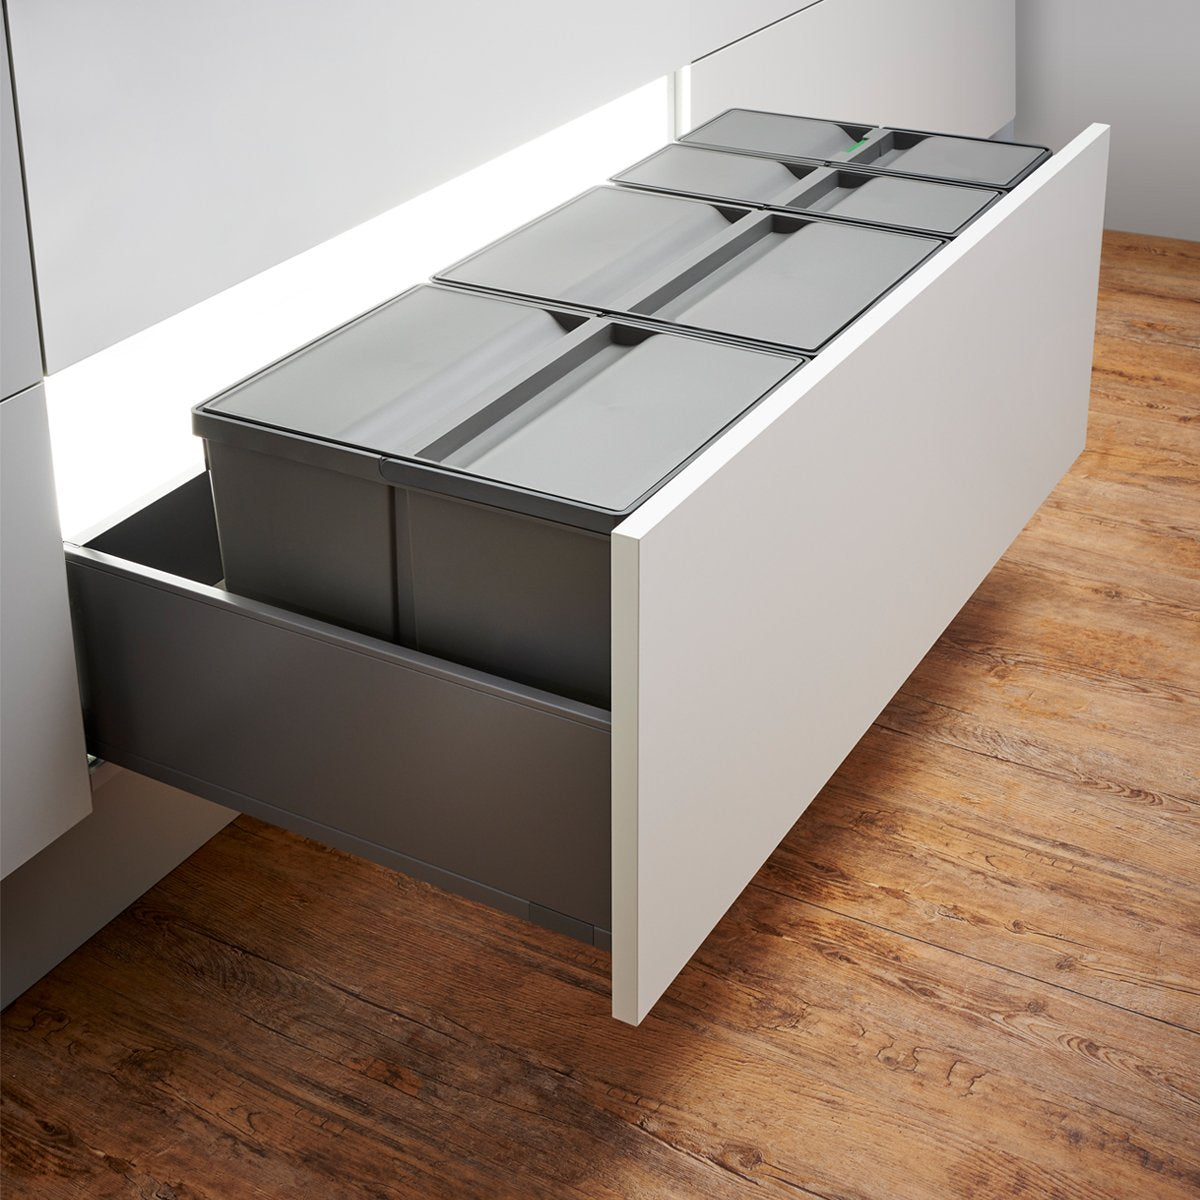 Wesco Pullboy 9XL 74L 4 Compartment Recycling Bin 1000mm Drawer